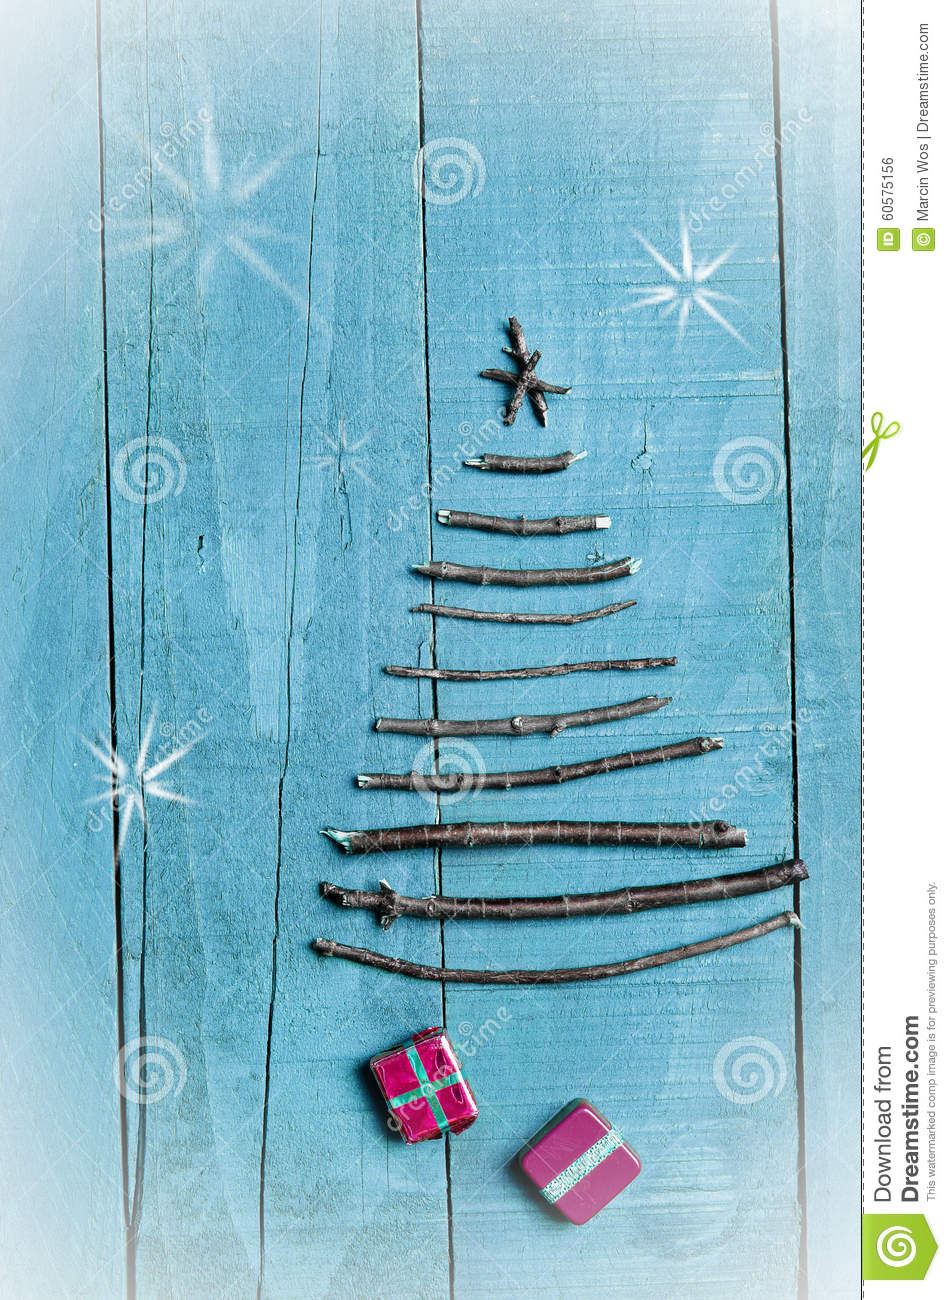 Christmas Tree Made From Dry Sticks On Wooden, Blue ...